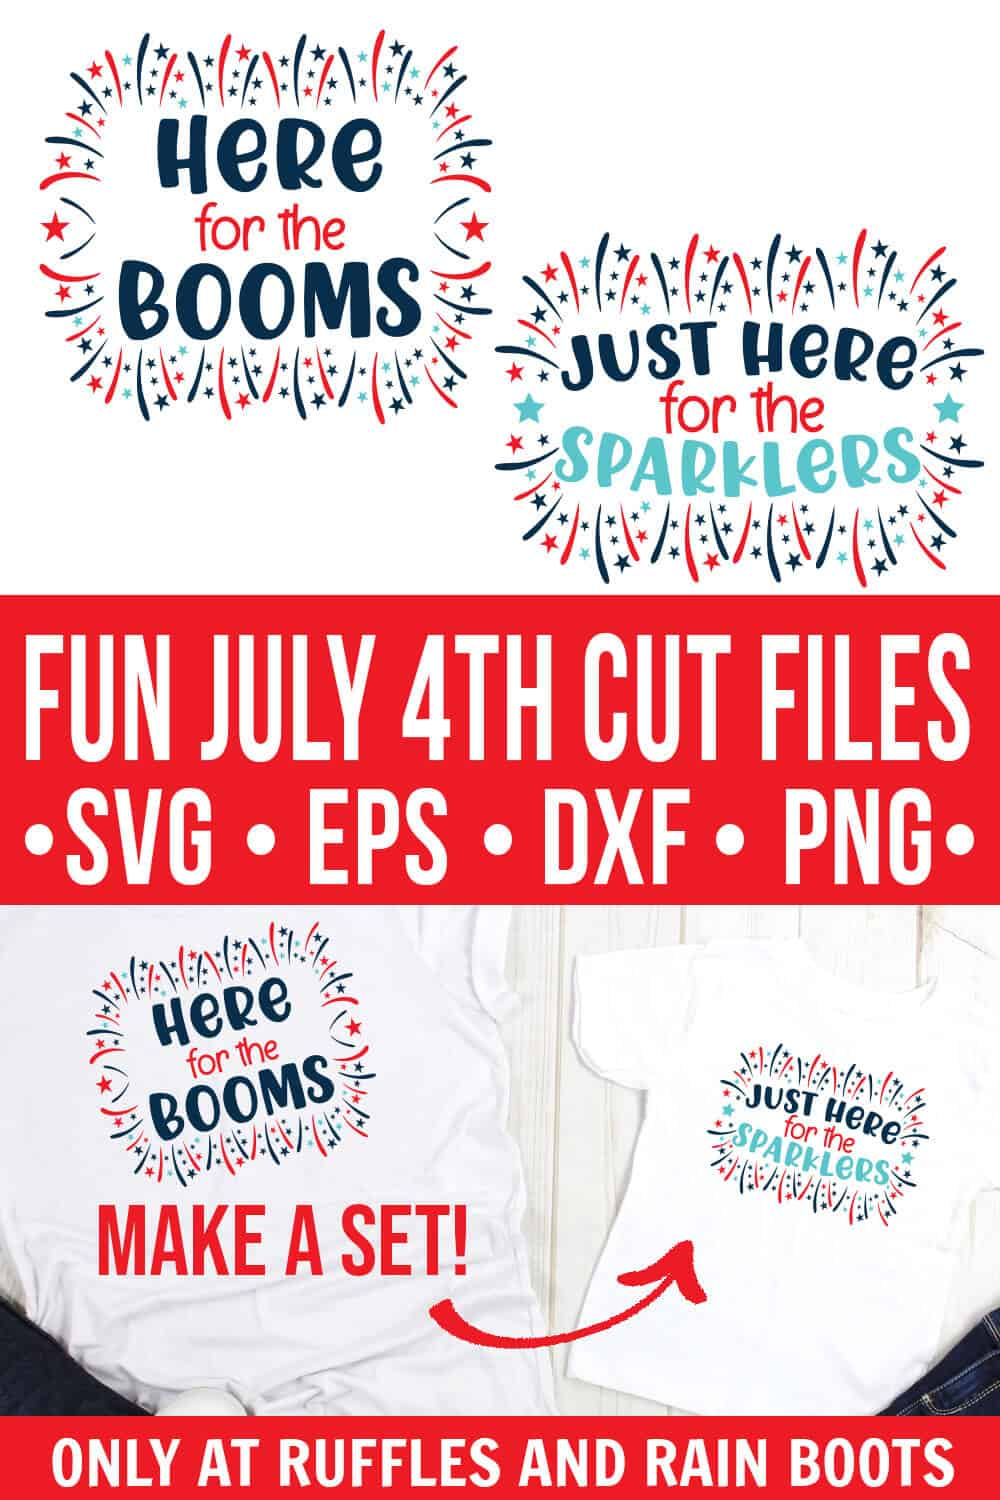 collage of just here for the sparklers svg and just here for the booms cut file from ruffles and rain boots